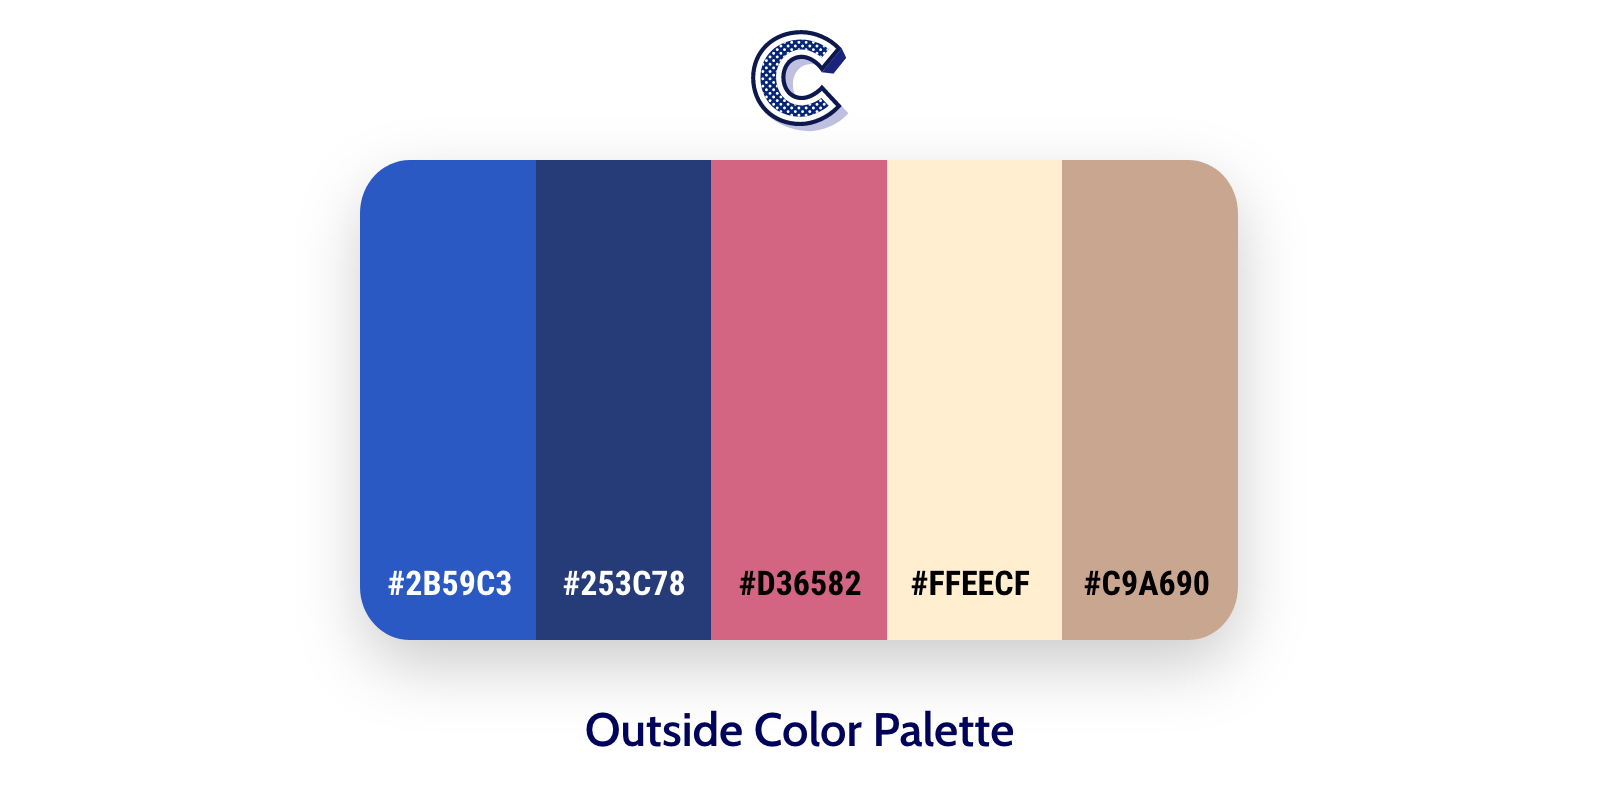 the featured image of outside color palette